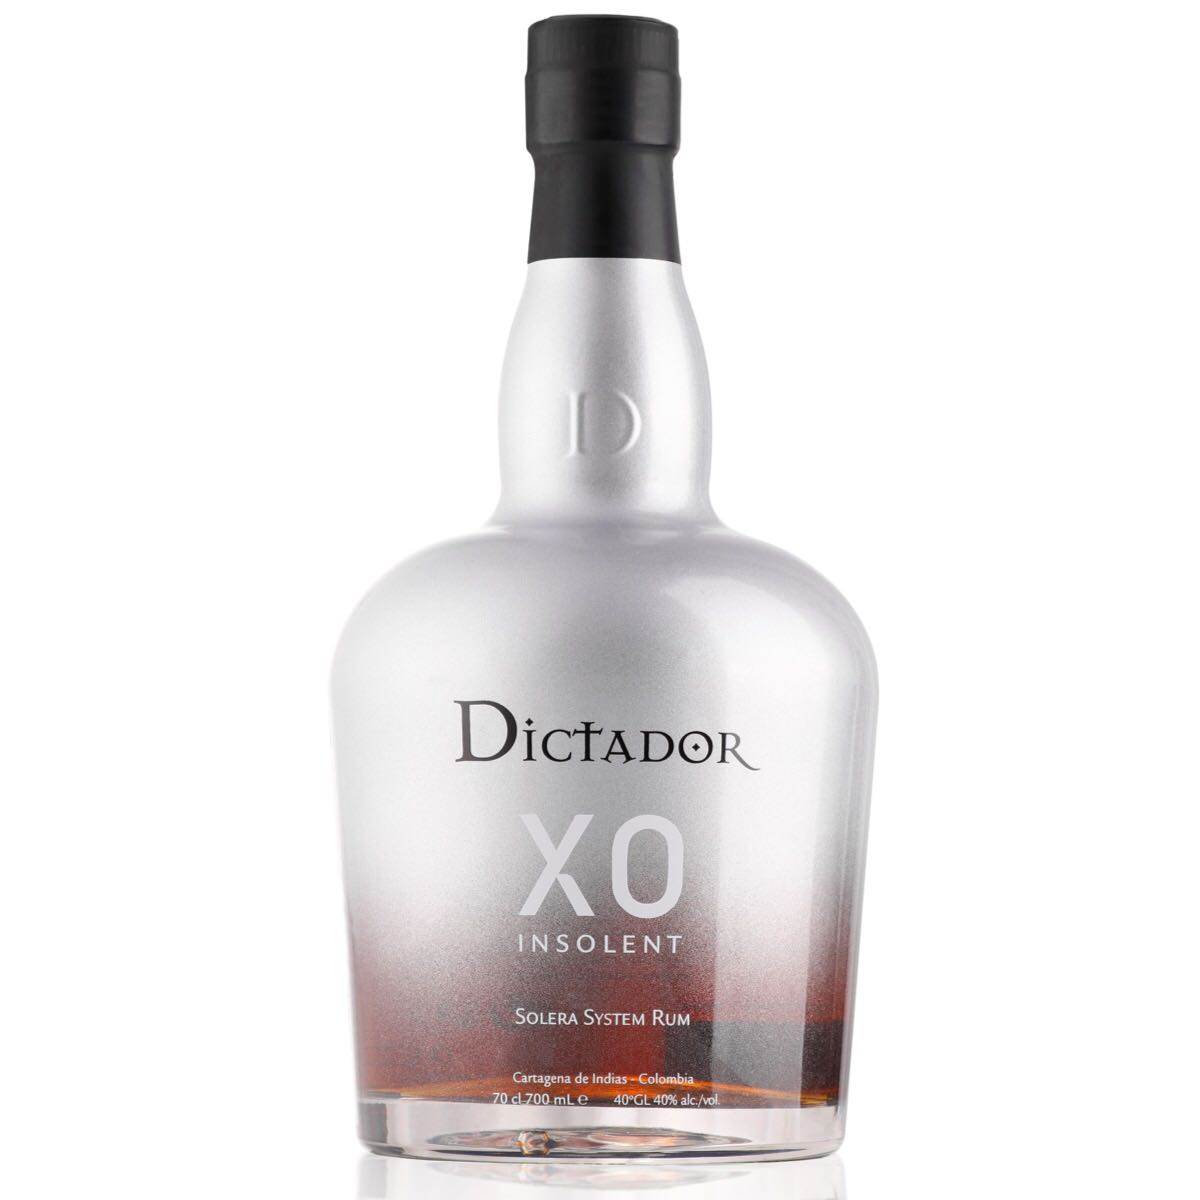 Bottle image of Dictador XO Insolent